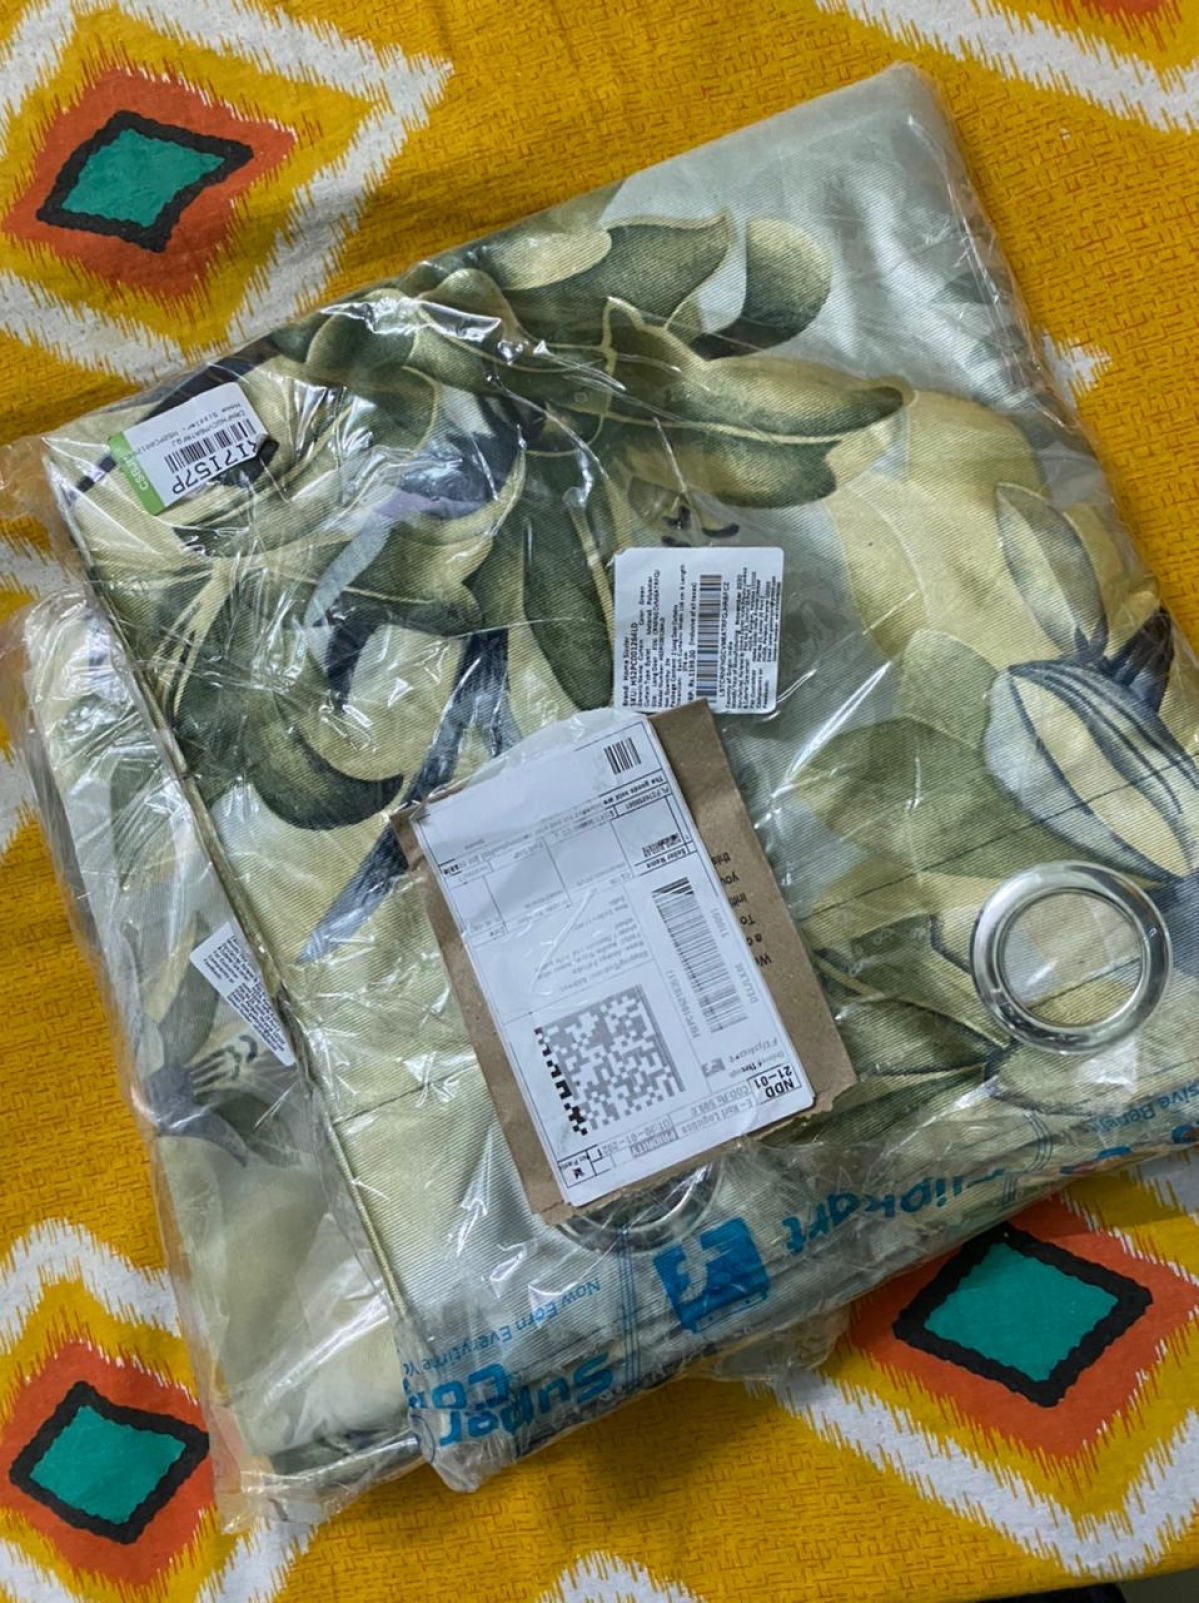 Curtains ordered from Flipkart received in a single layer packaging